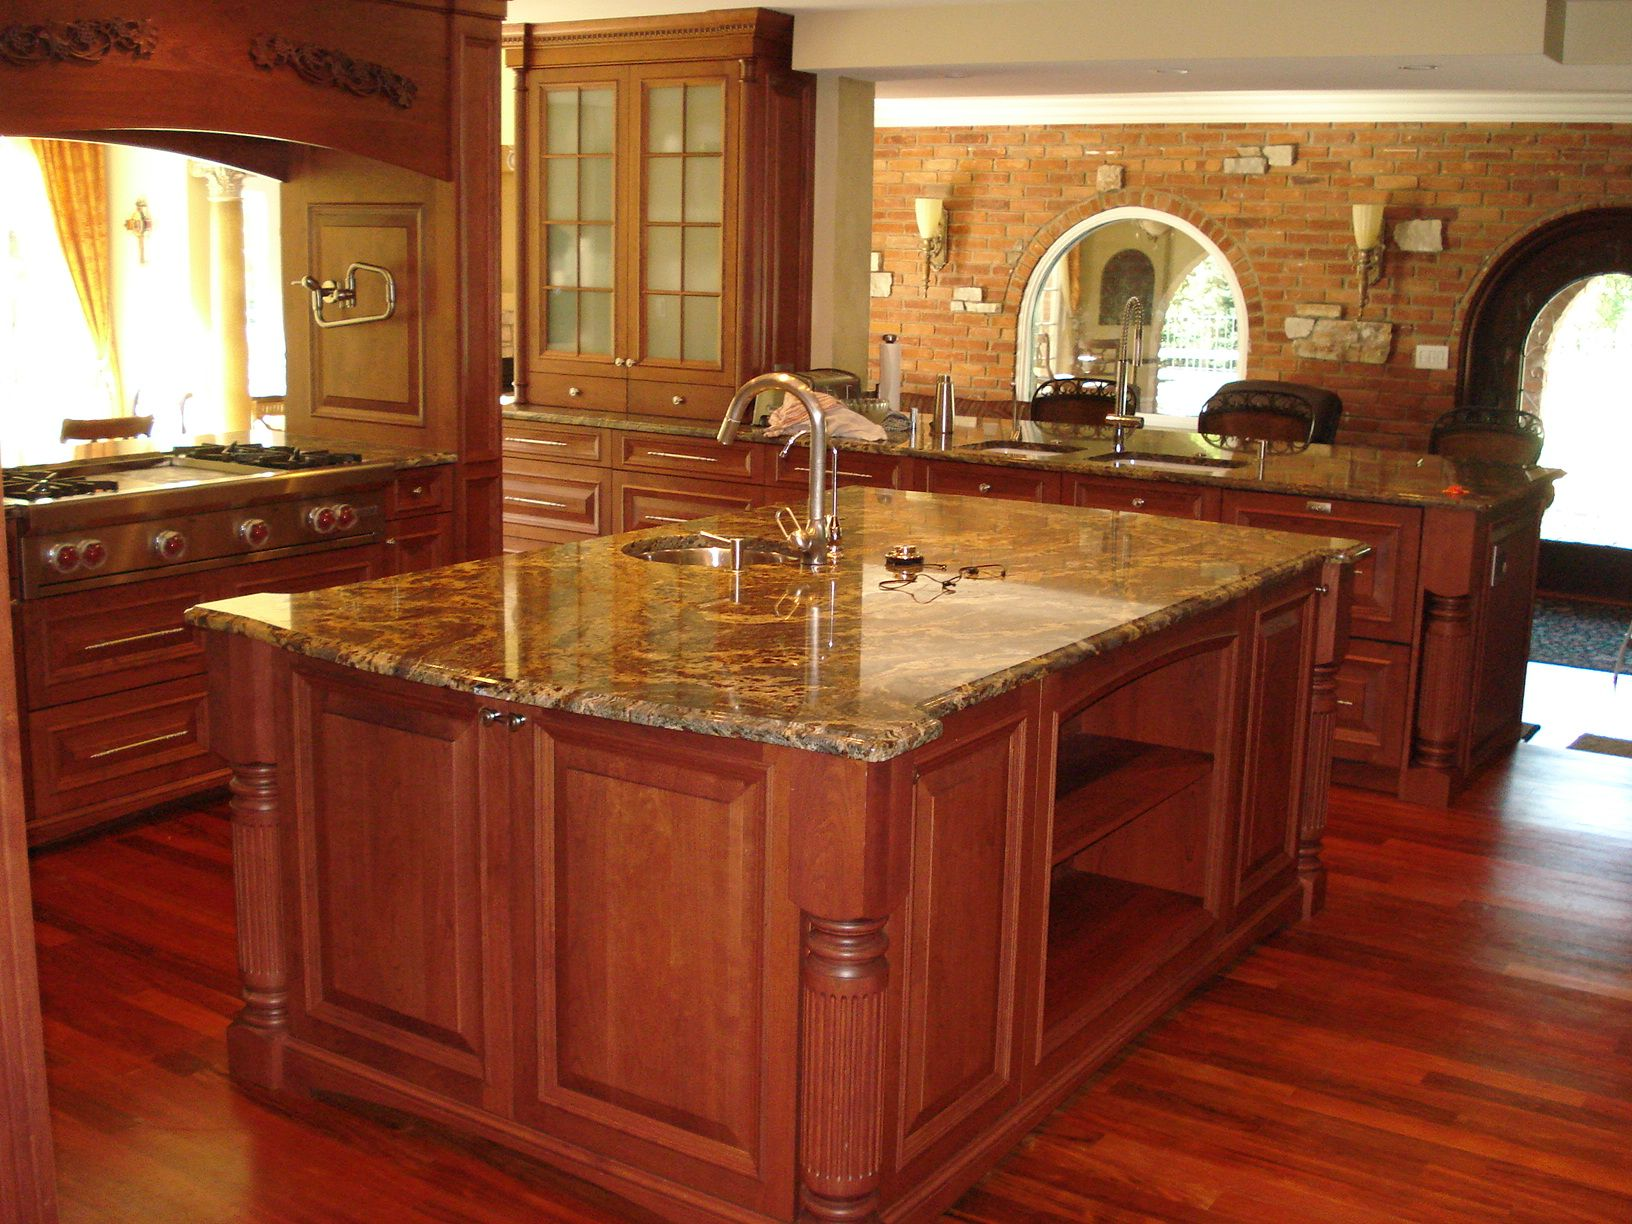 Best Countertops granite countertops adding practical luxury to modern kitchen